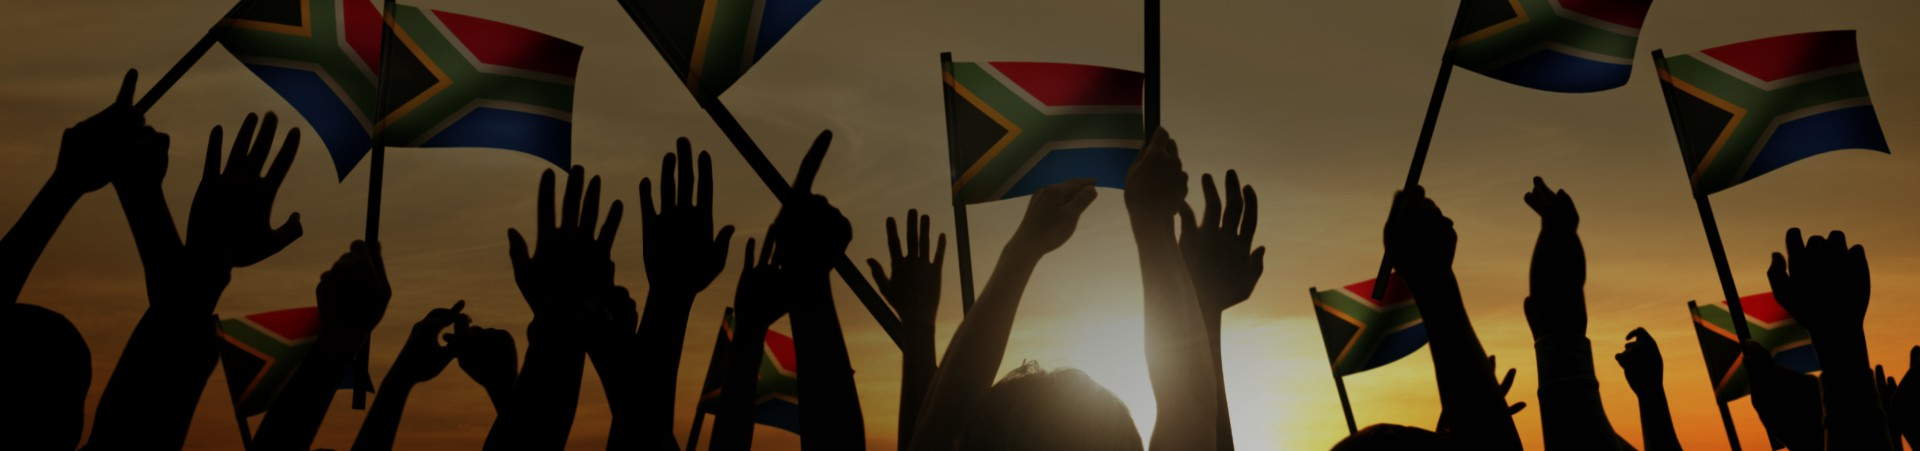 southafrica-flags11